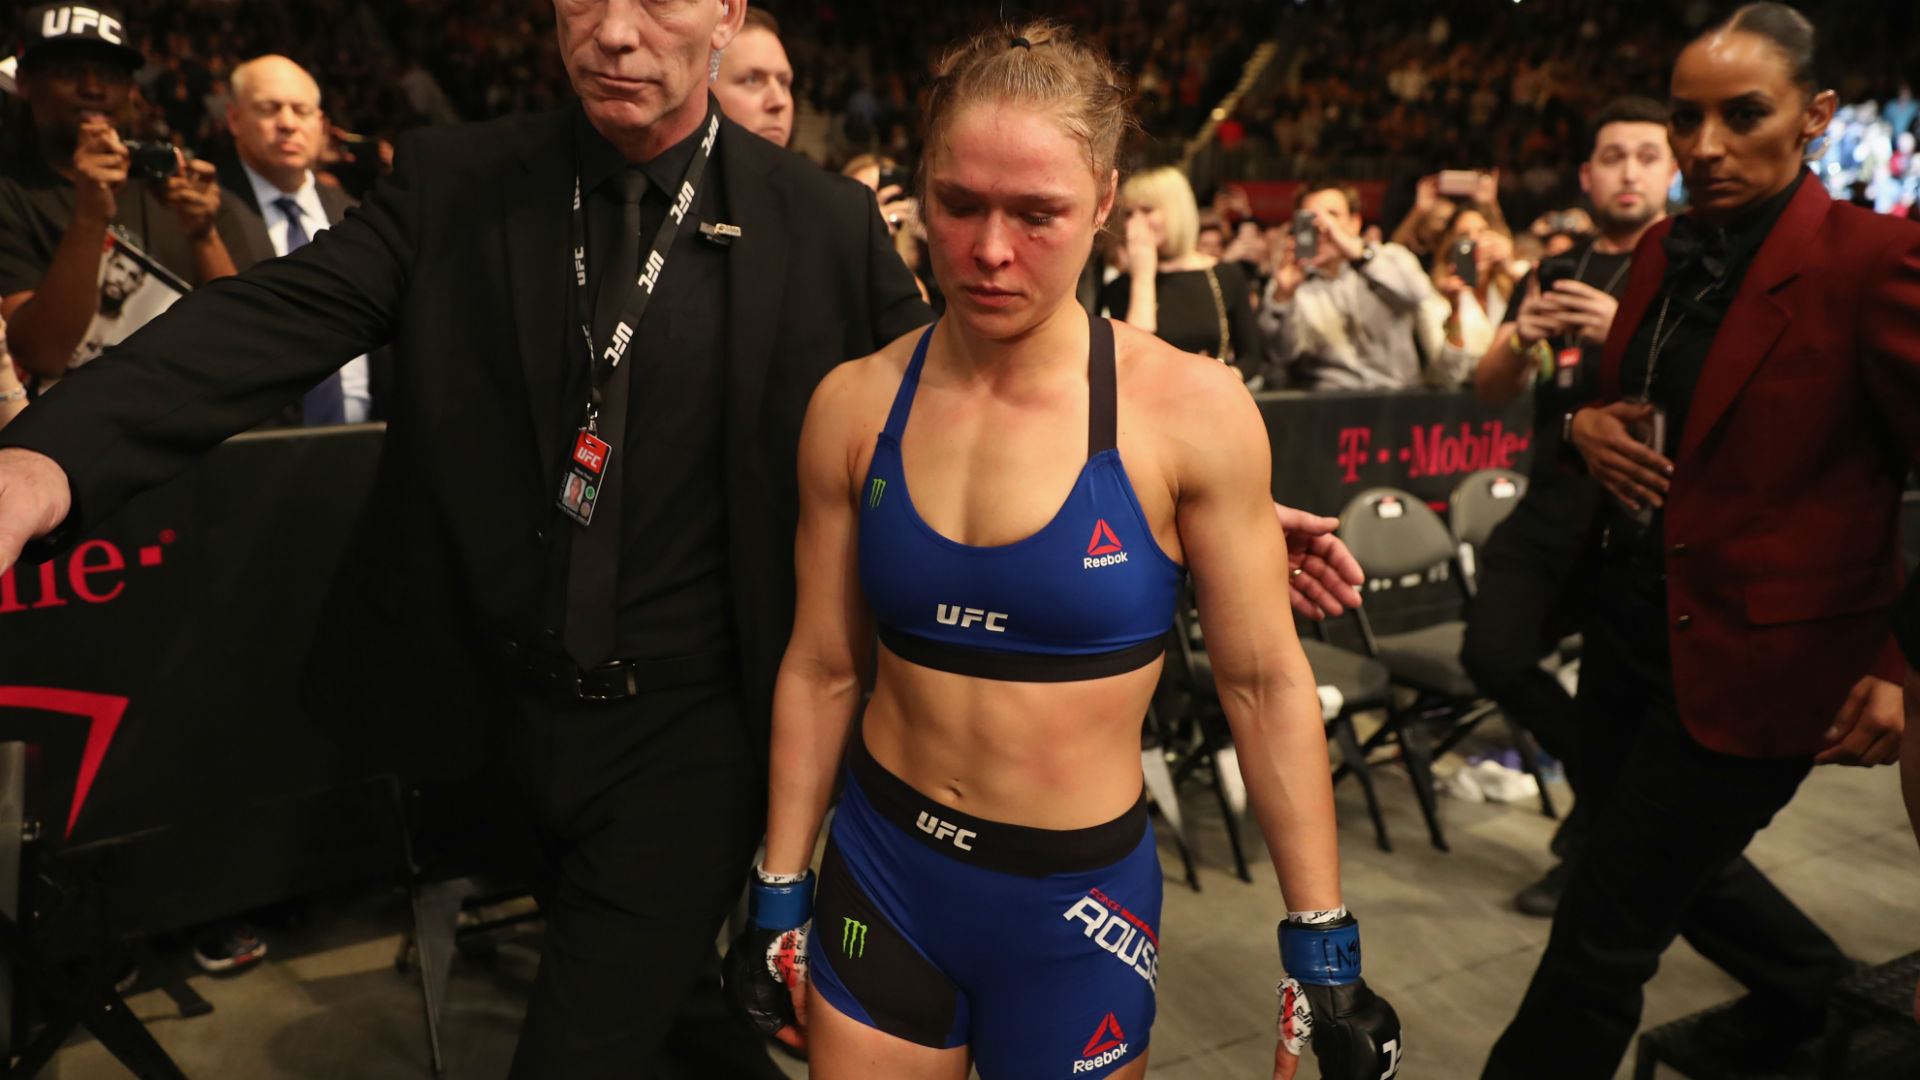 UFC 207 beatdown makes it clear: Time for Ronda Rousey to retire